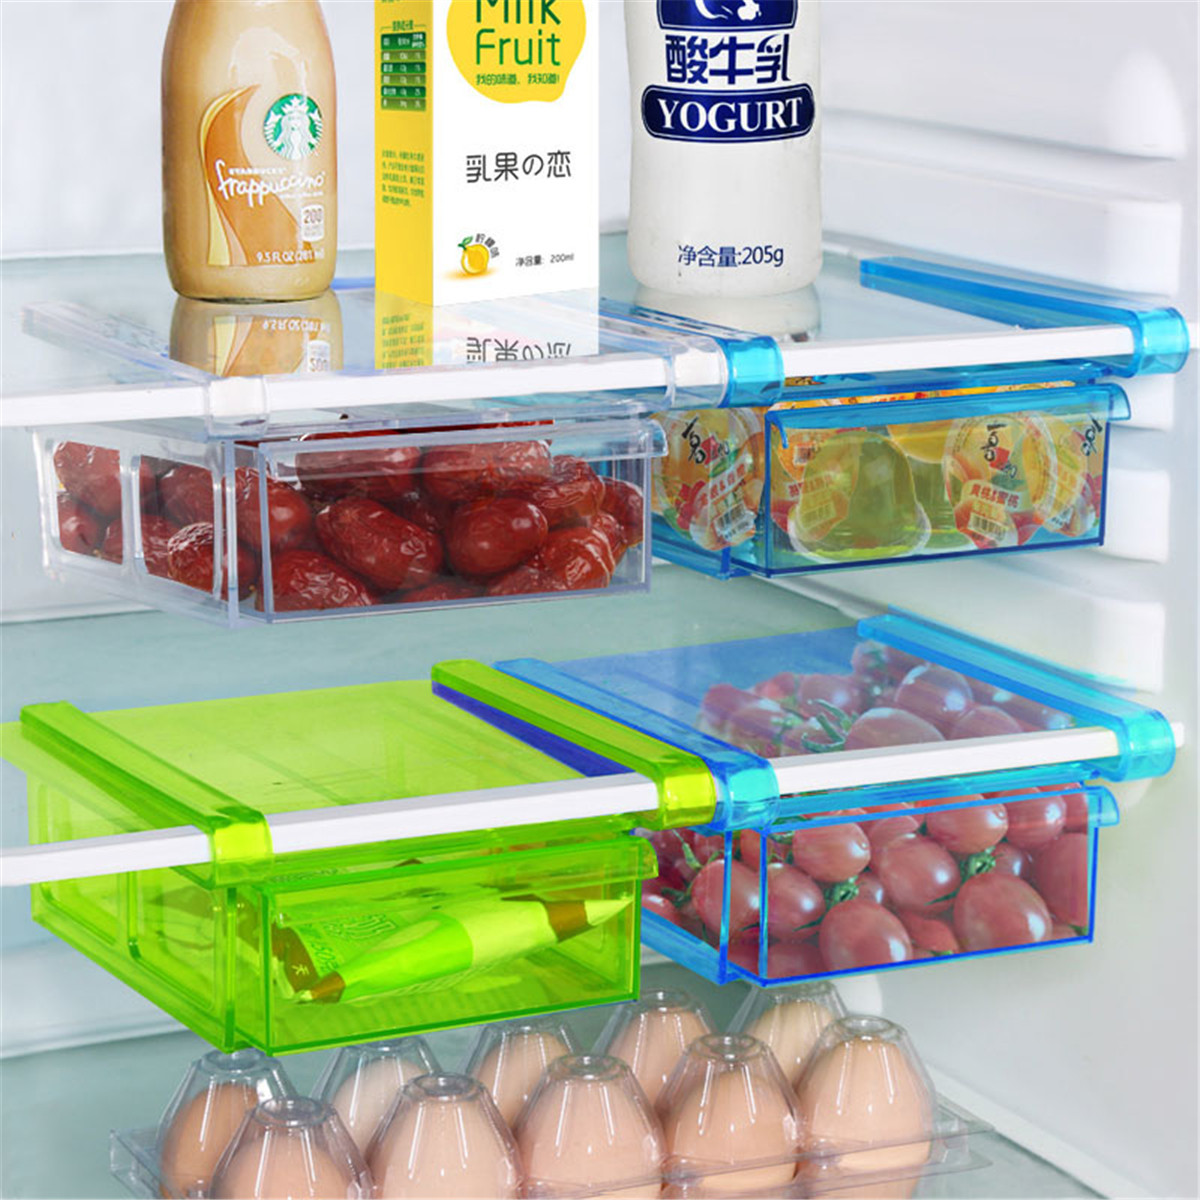 Kitchen Food Crisper Food Container Box Refrigerator Storage Box ,Plastic Bin Organizer Fridge Freezer Space Saver Drawer Holder